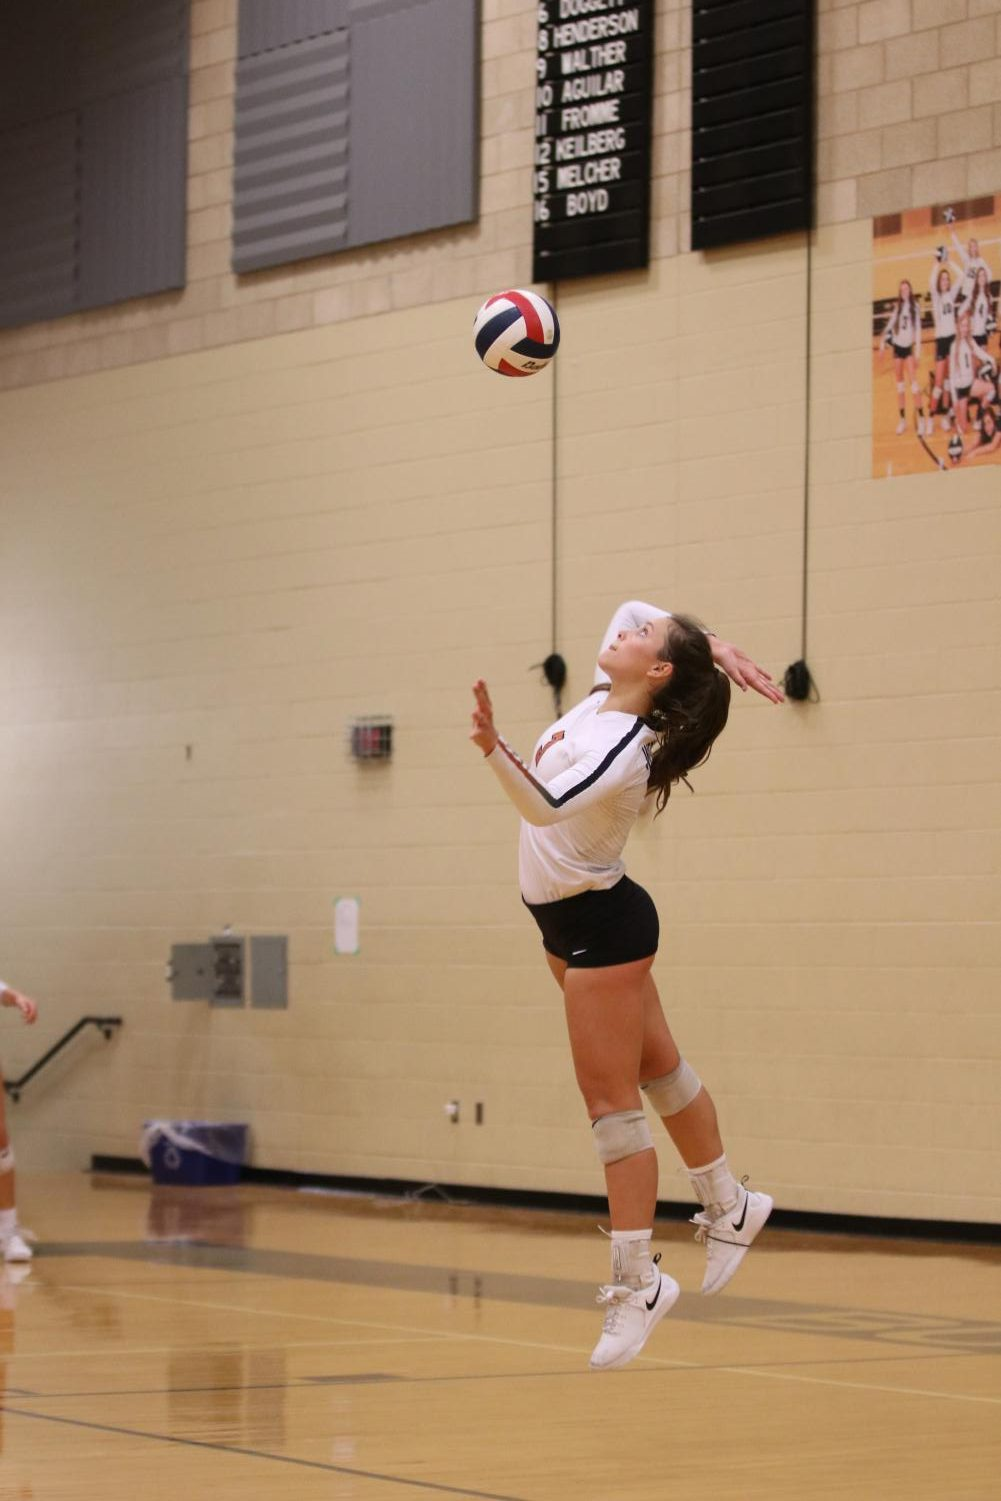 Aiming+to+hit+the+ball%2C+Abby+Gregorczyk+%2721+serves+to+the+opposing+team.+With+this+serve%2C+Gregorczyk+scored+a+point.